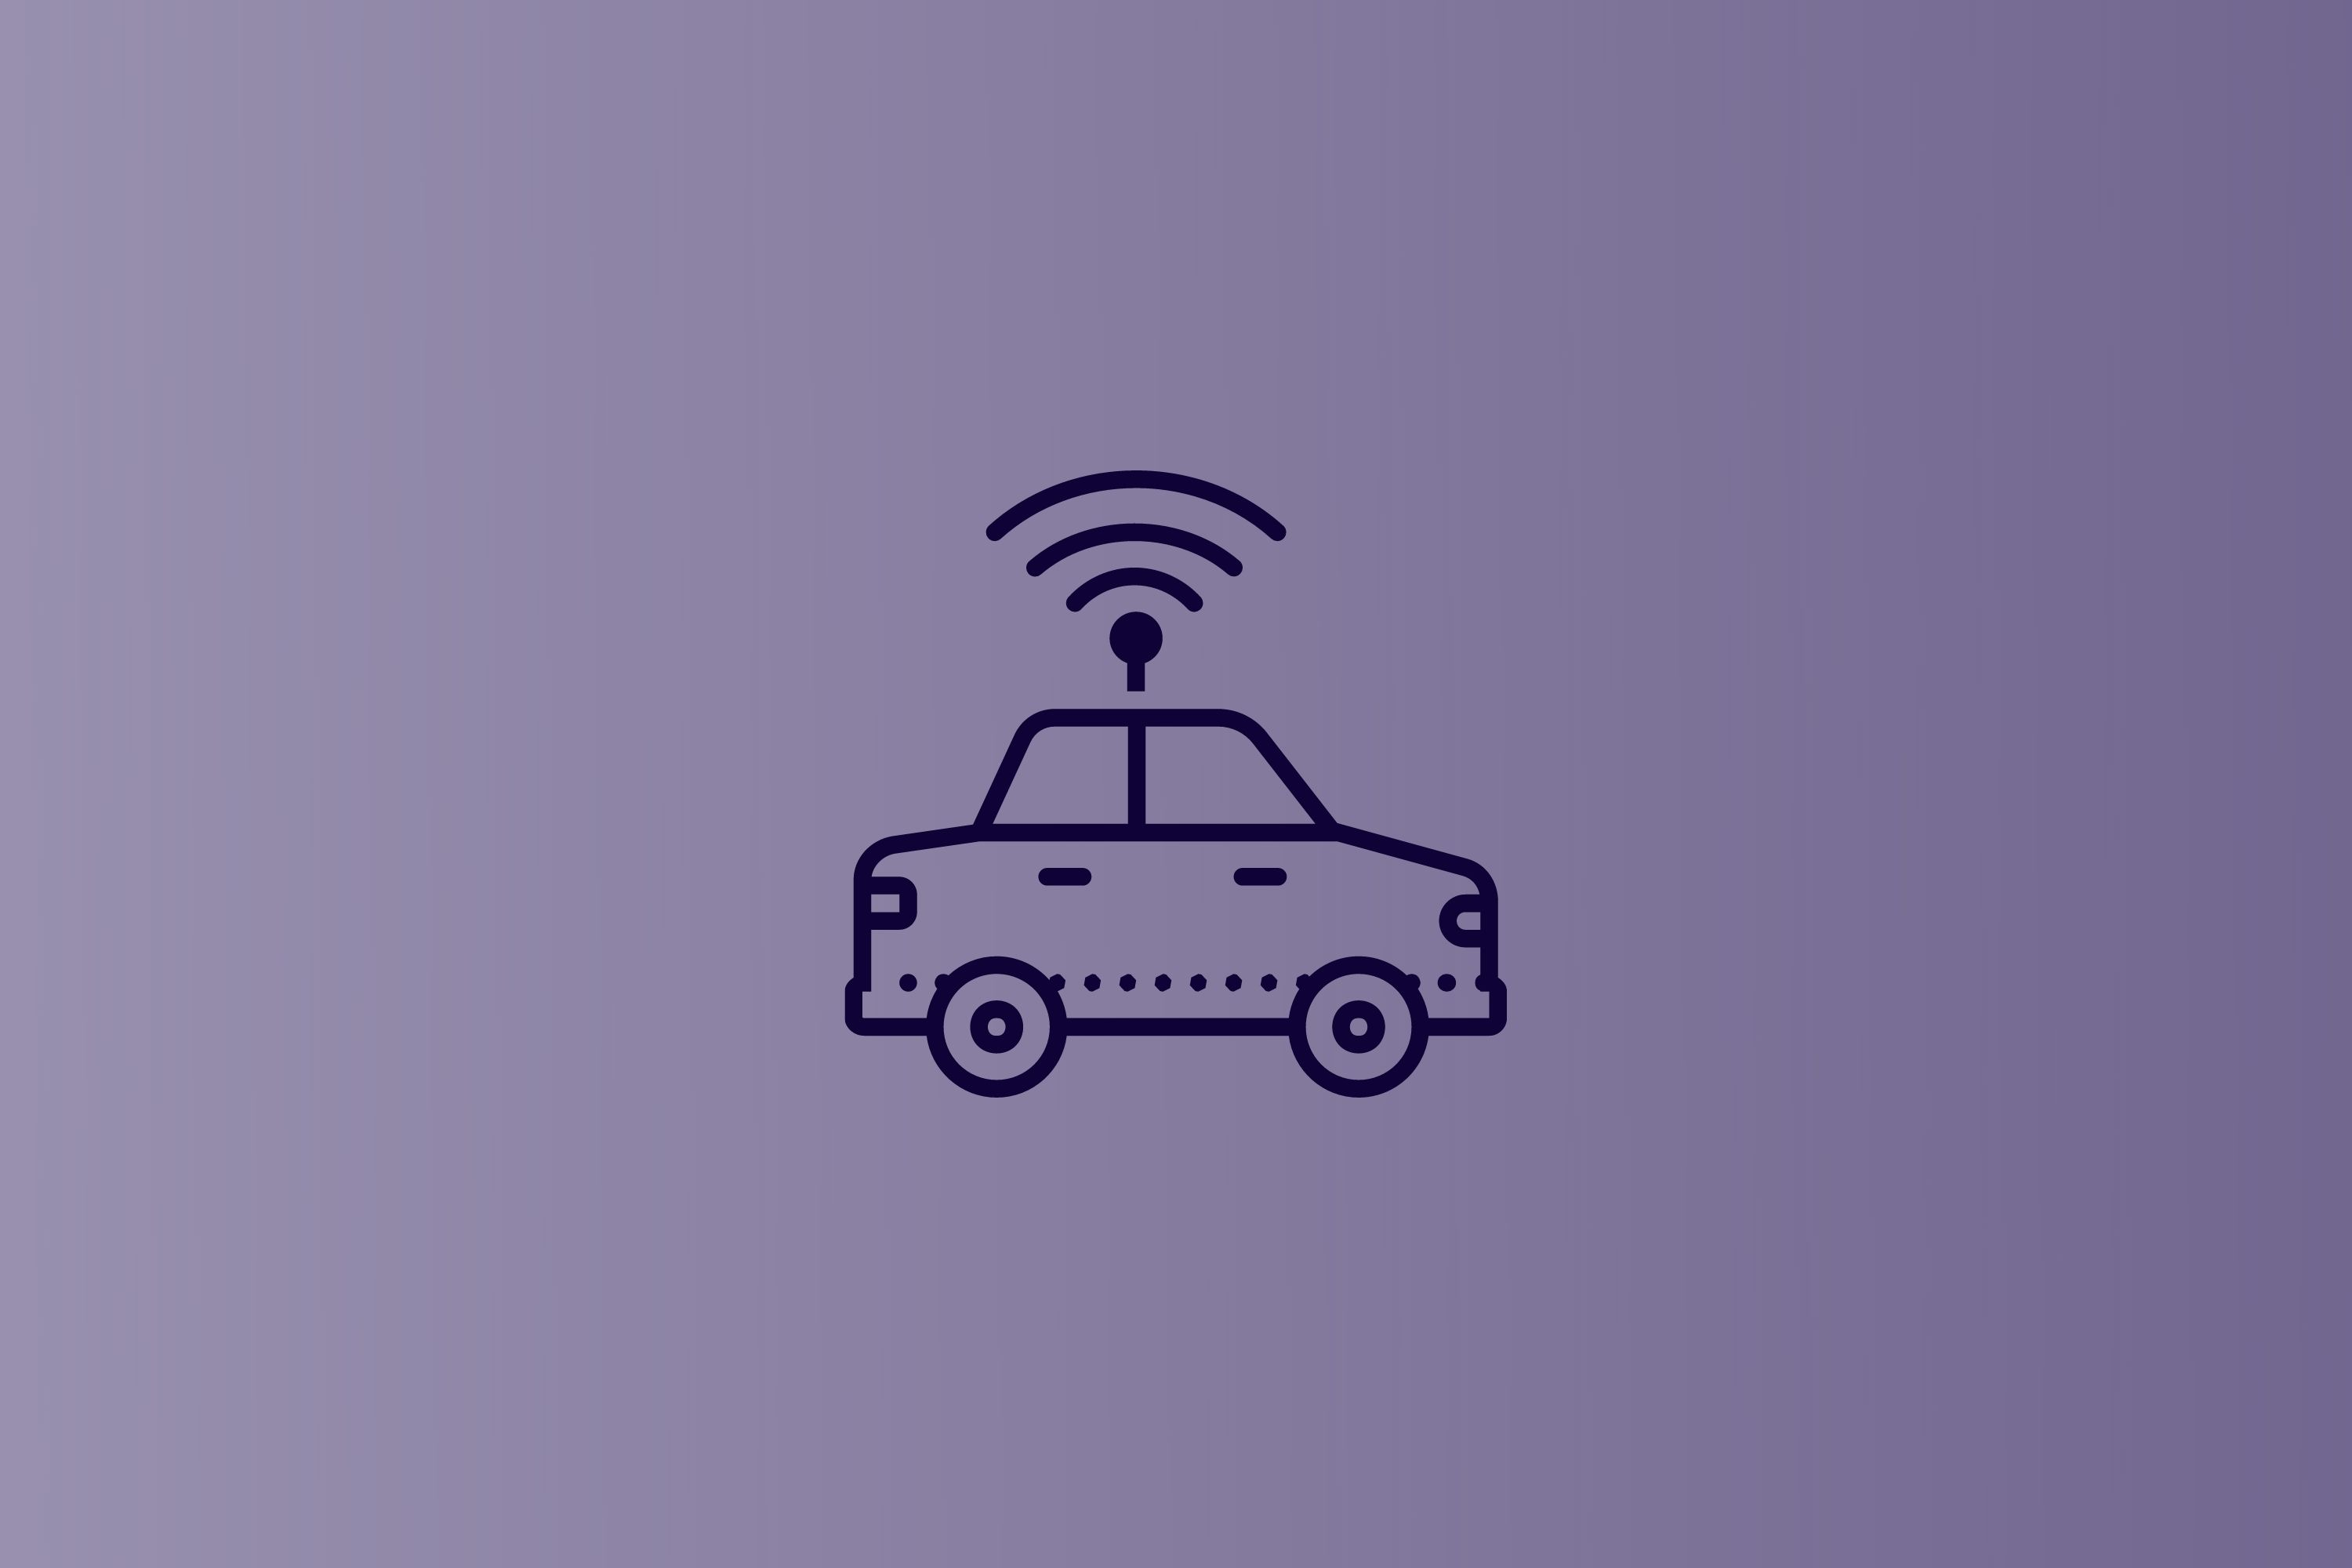 AI being used in self driving cars